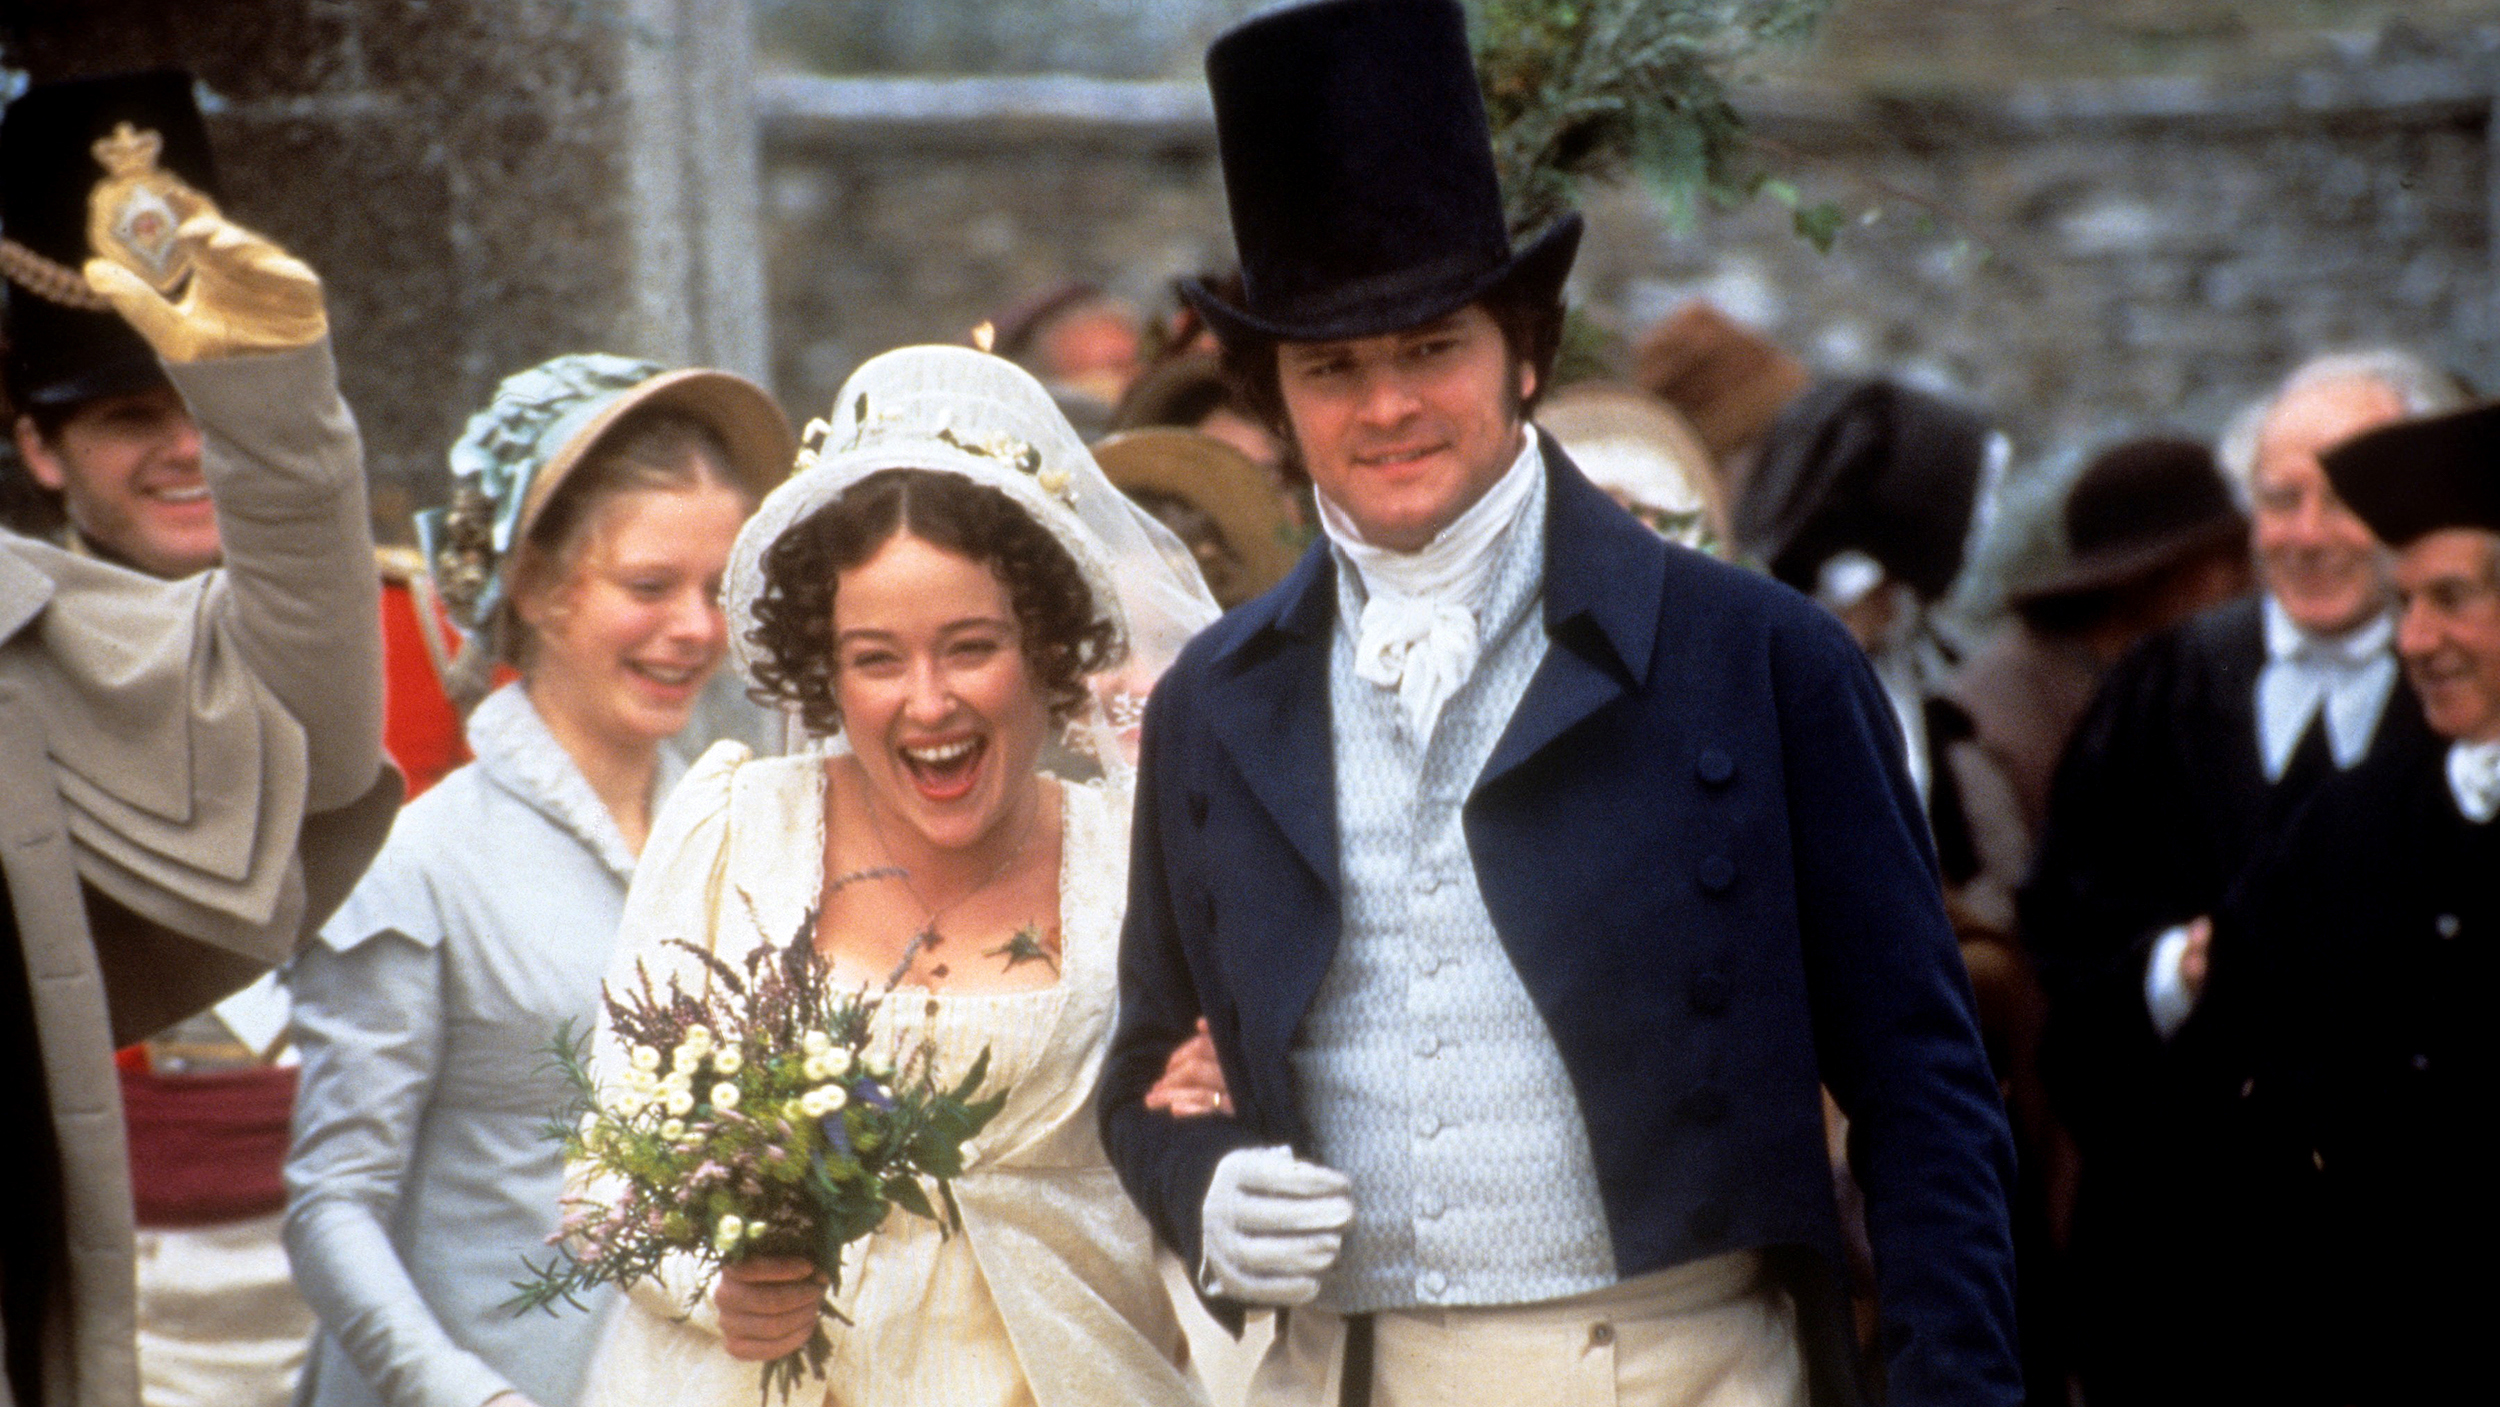 pride and prejudice miniseries turns here s why it s still   pride and prejudice miniseries turns 20 here s why it s still the best version com